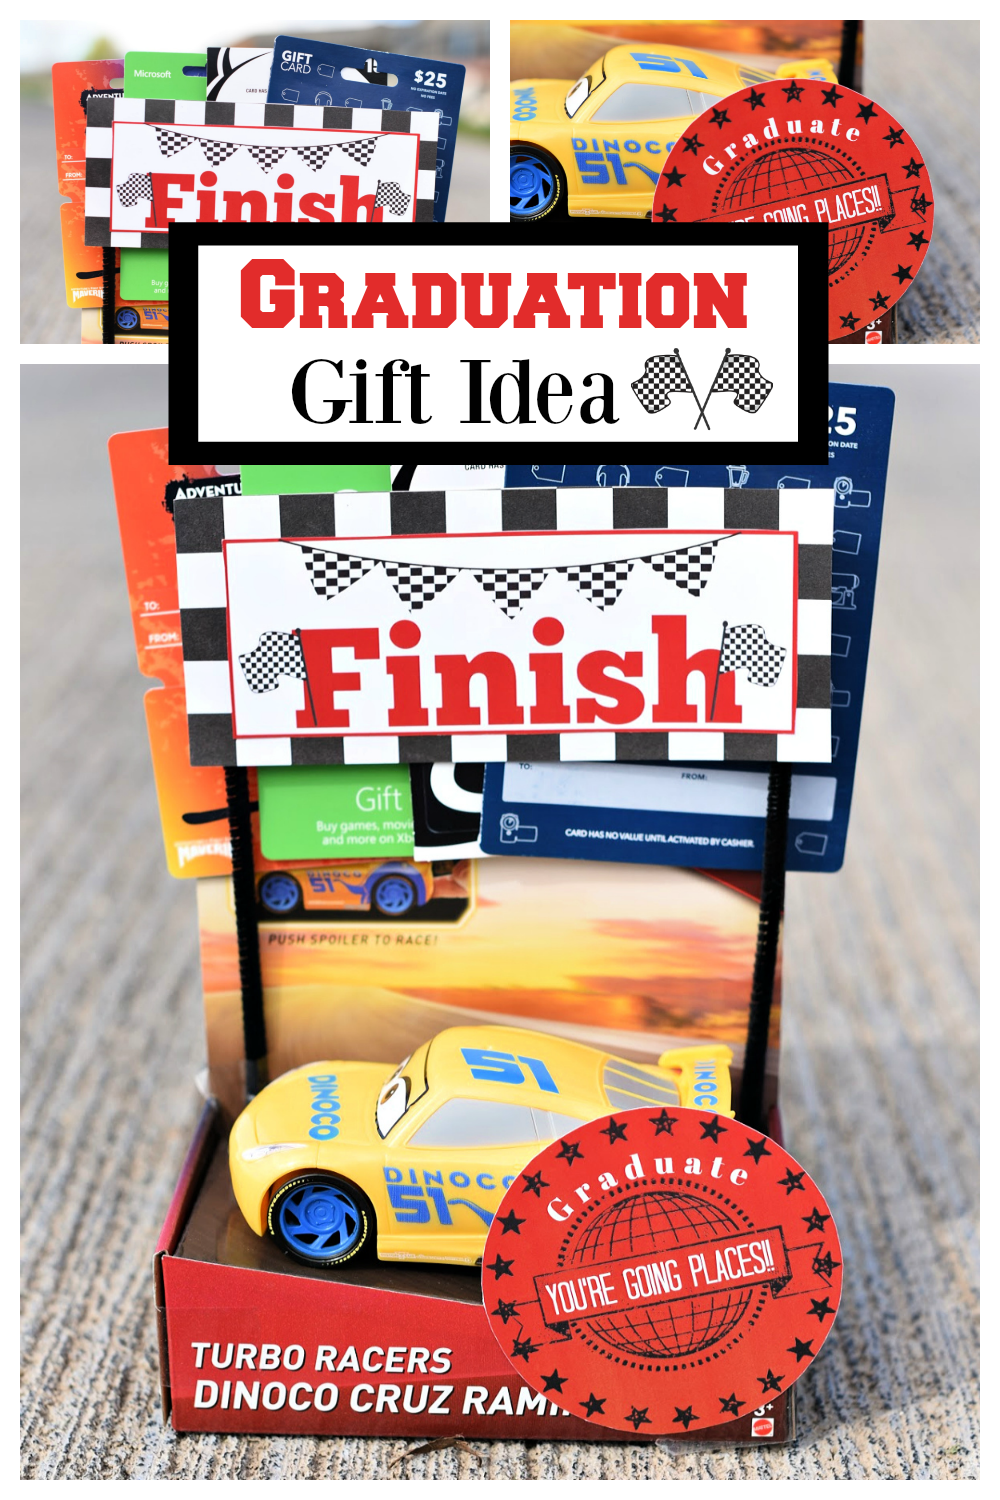 Fun and simple DIY graduation gift idea! If you have a graduate we have the perfect graduation gift. It's a fun way to give gift cards, any graduate will love it. #graduationgift #fungraduationidea #gifts #graduate